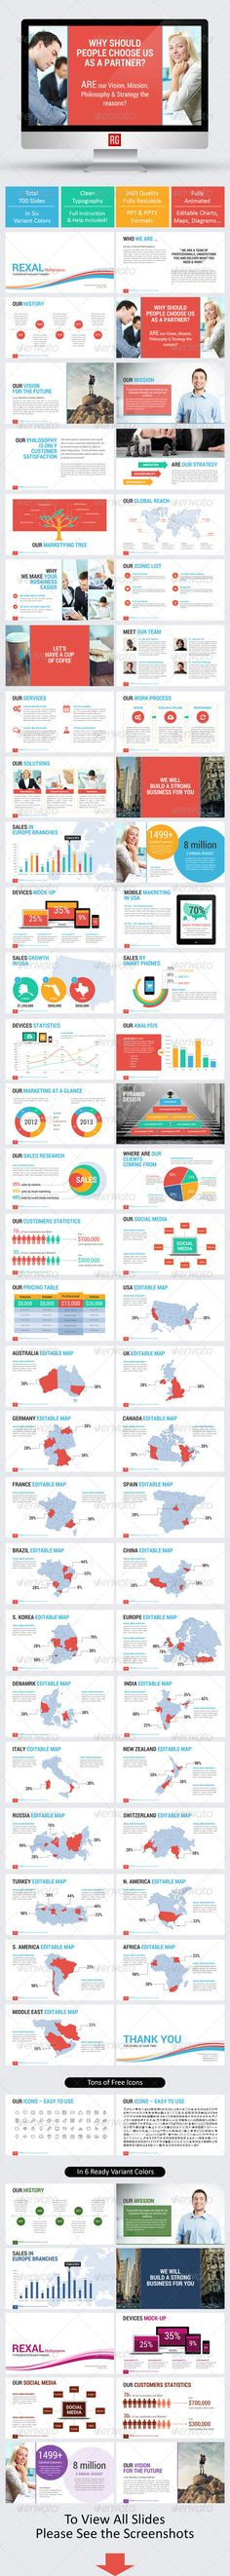 Economic Indicators PowerPoint Template Use The Economic - Awesome example of business plan presentation powerpoint ideas